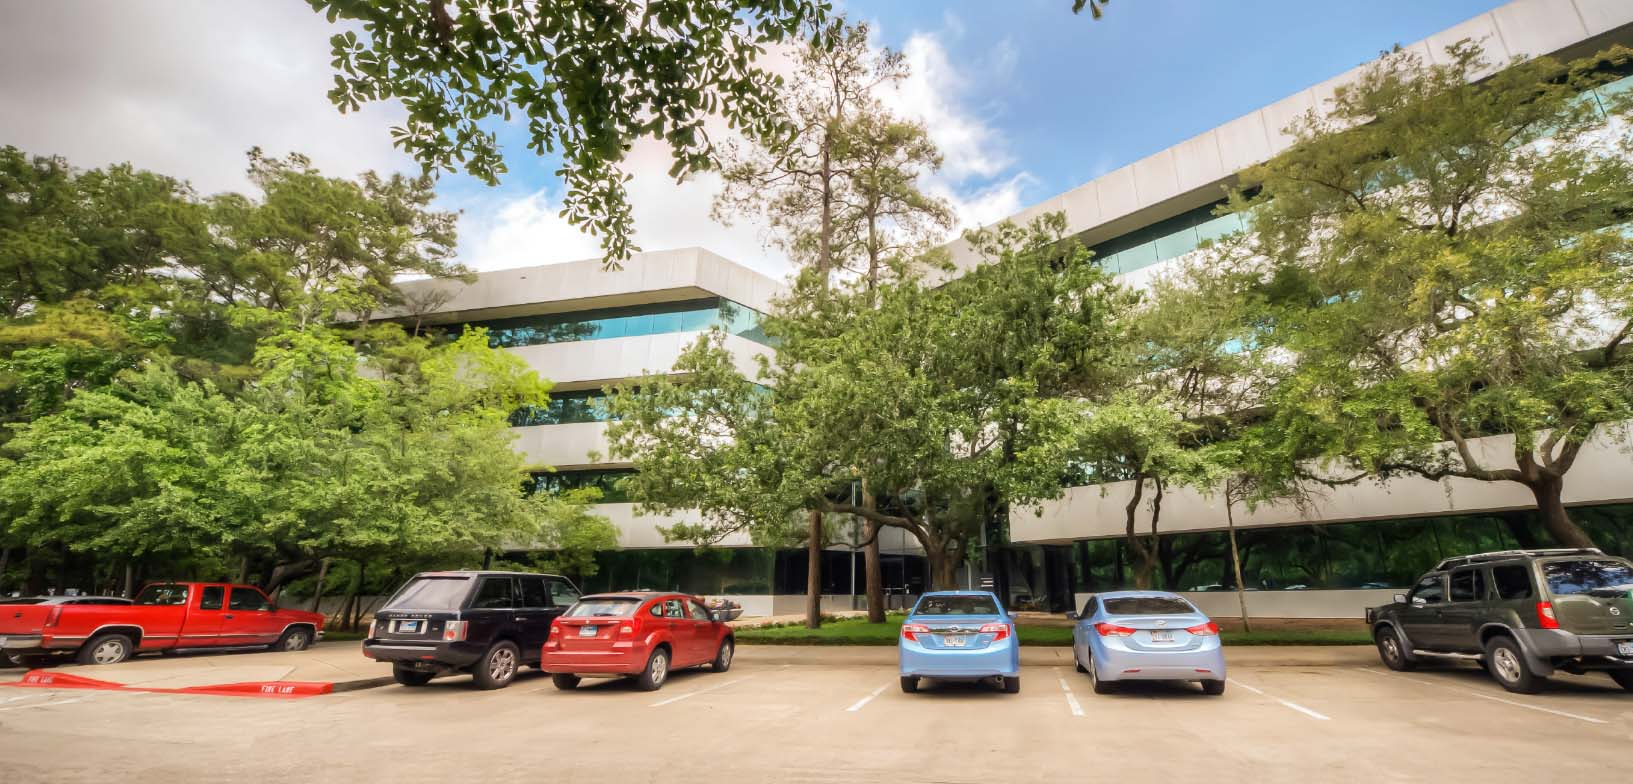 Coveted Woodlands location close to Interstate 45